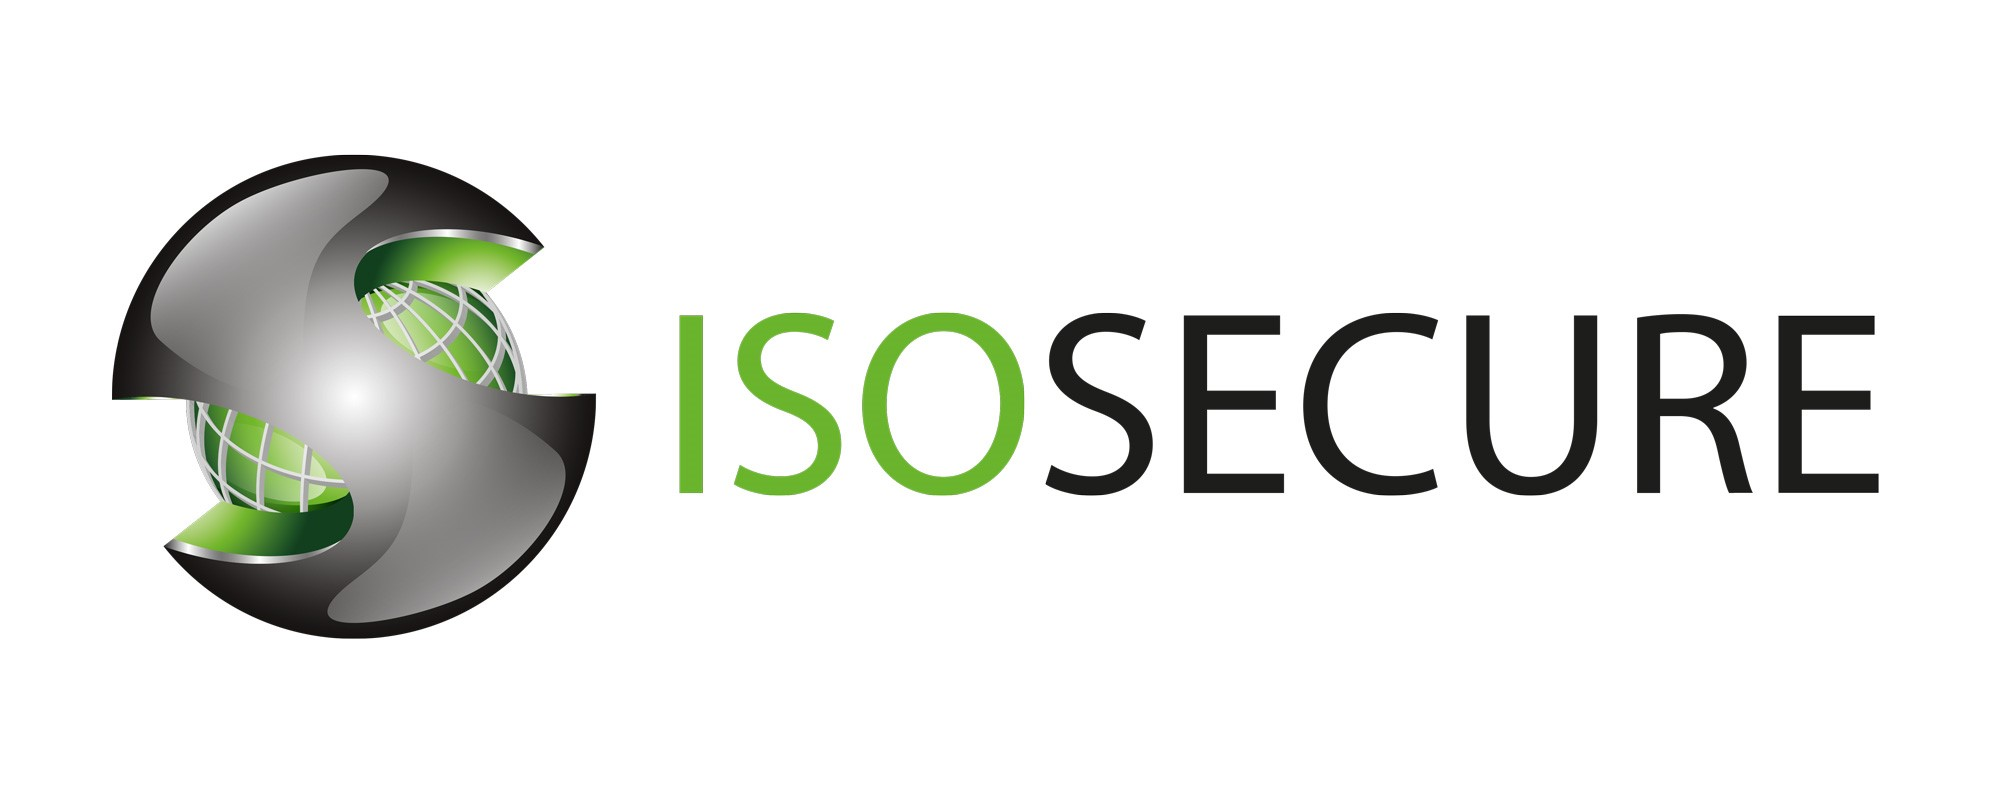 IsoSecure